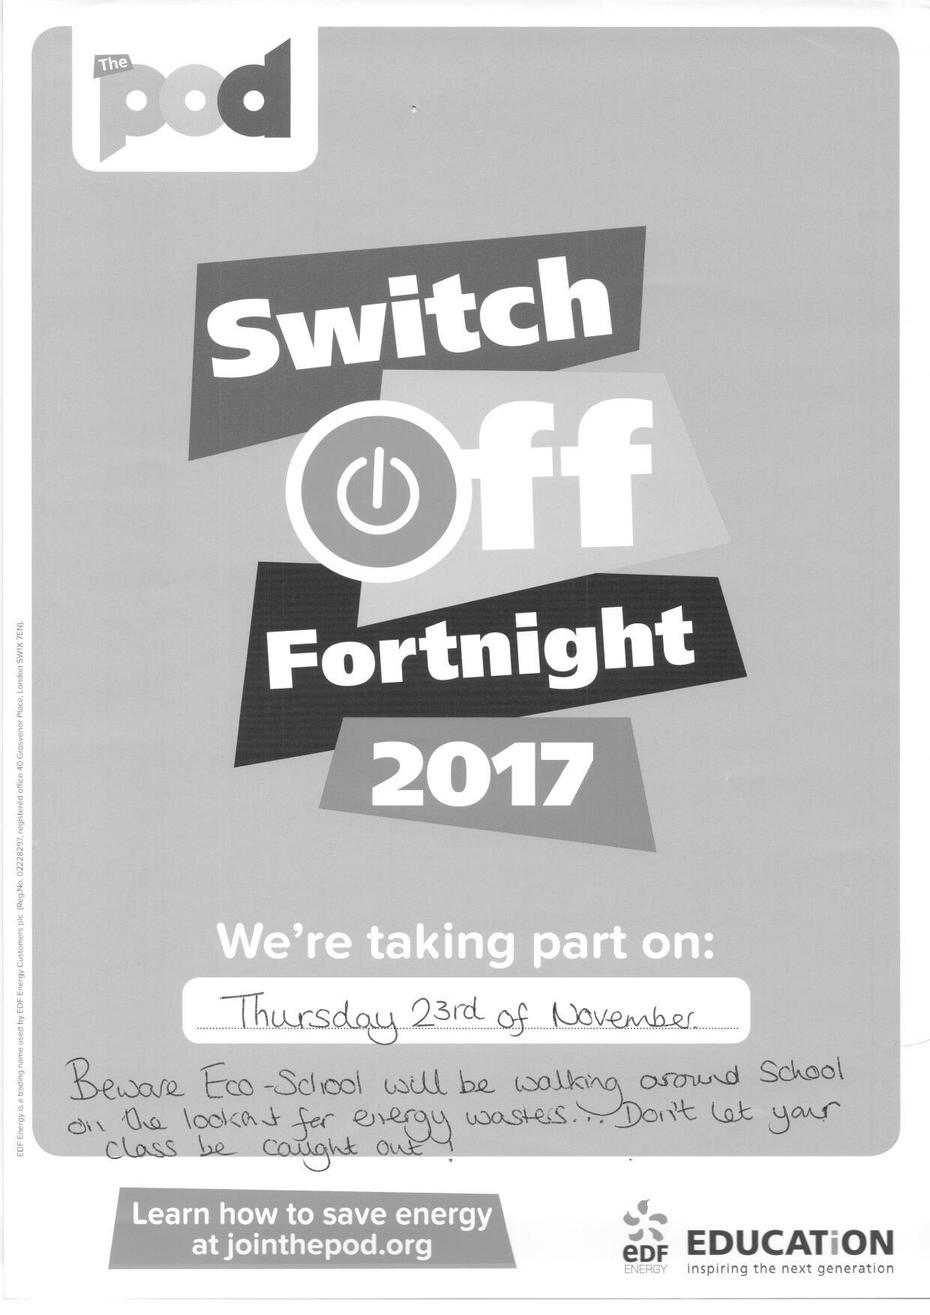 Switch off Fortnight poster